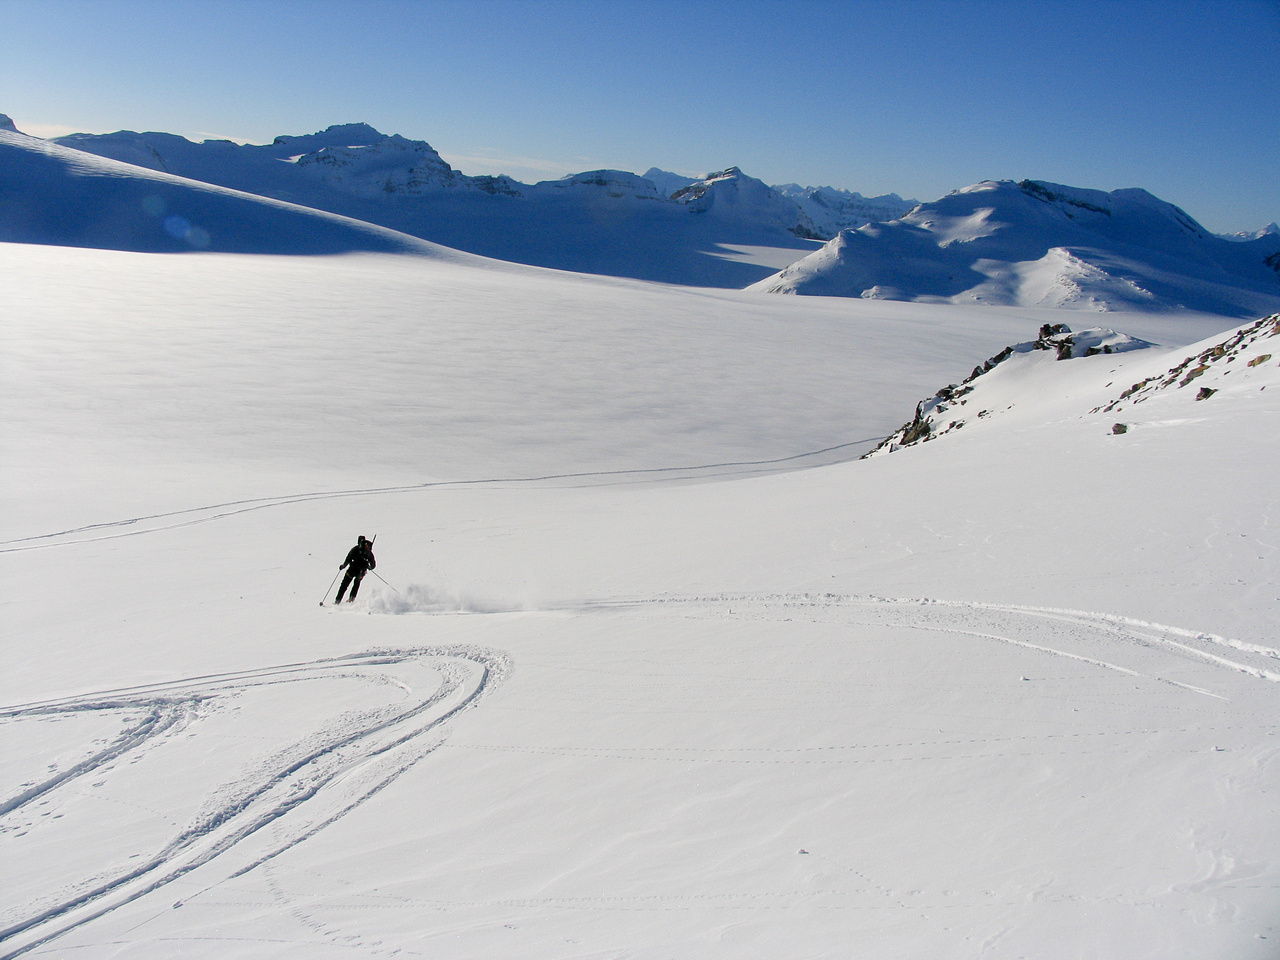 JW skis off the col down to the main ice field.